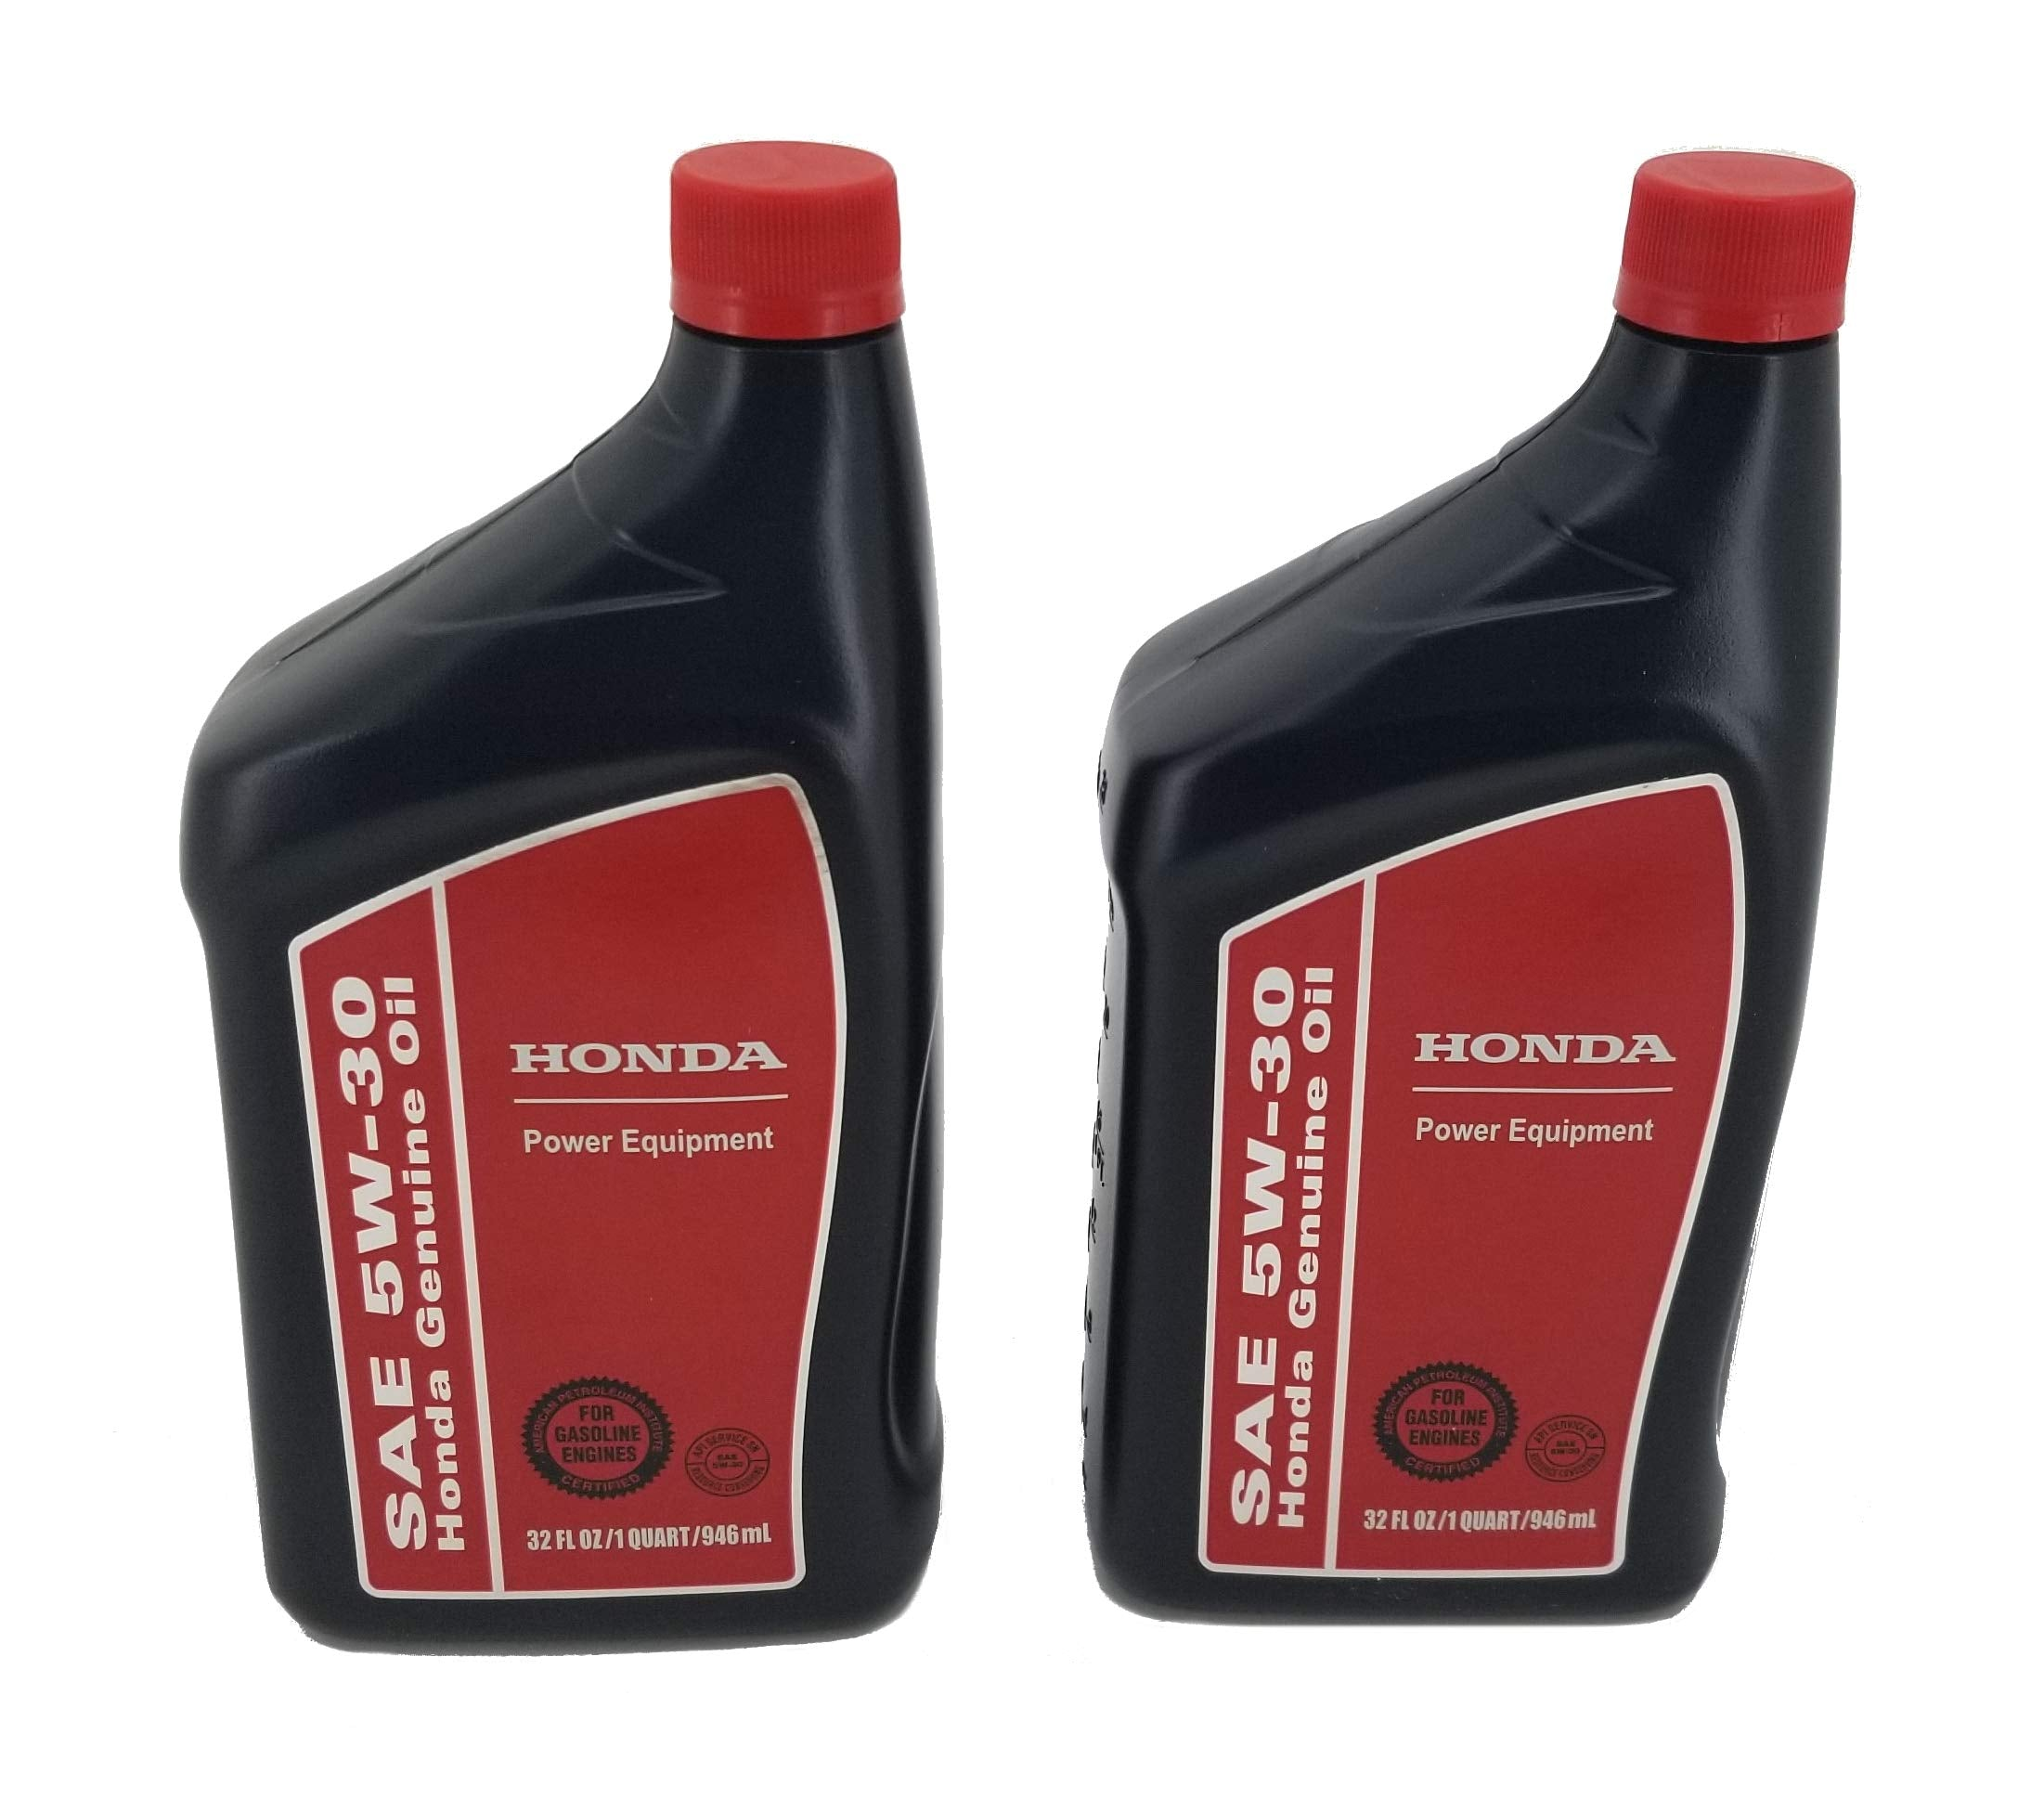 Honda 5W30 Engine Oil (2 Pack) - 08207-5W30